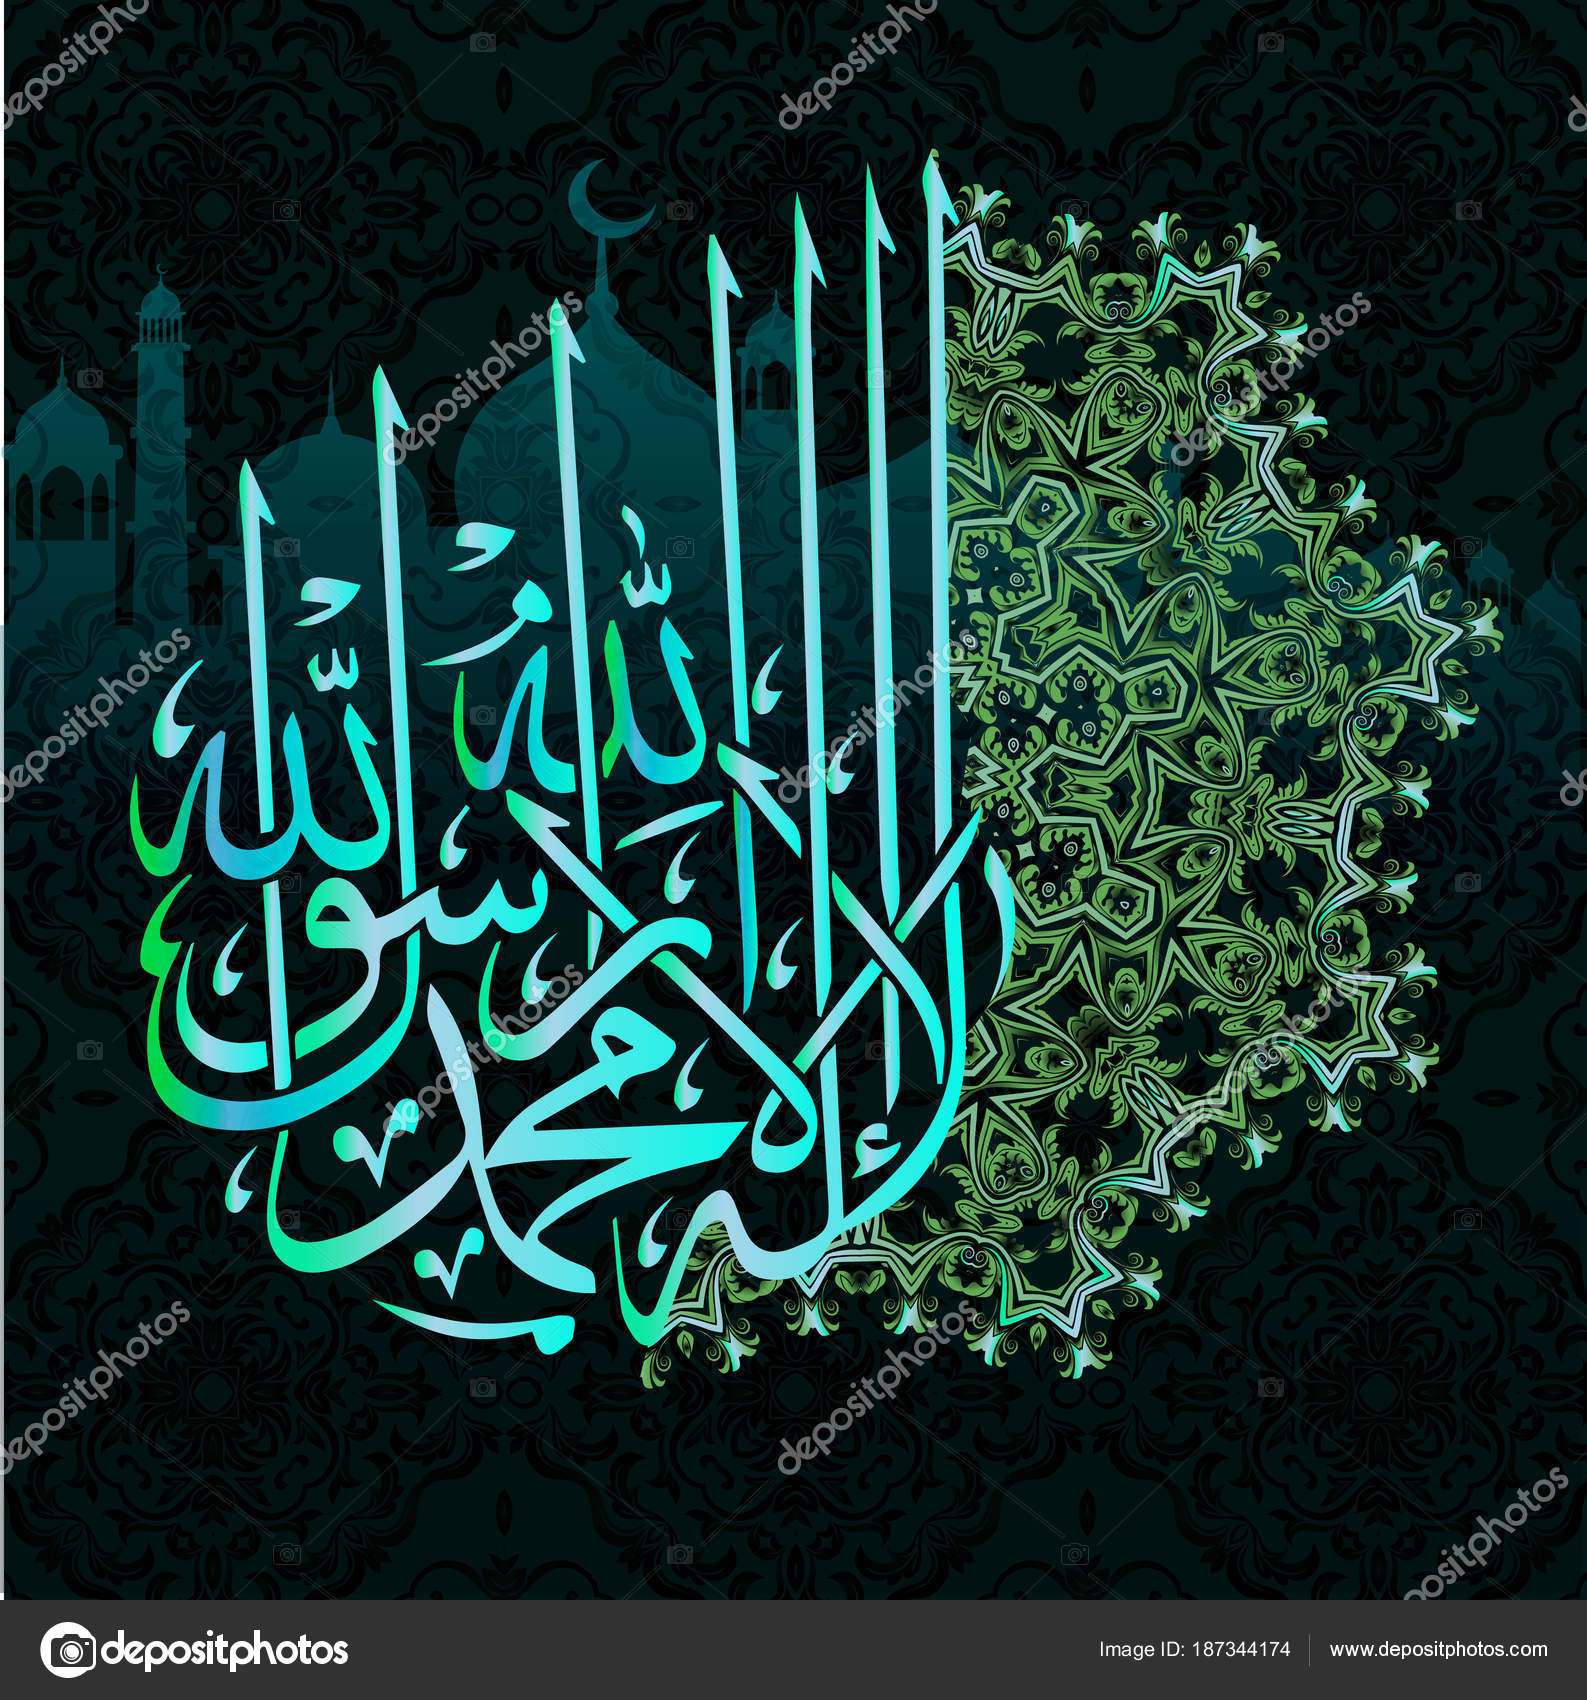 Áˆ Quranic Stock Images Royalty Free Quran Verse Wallpaper Hd Pictures Download On Depositphotos